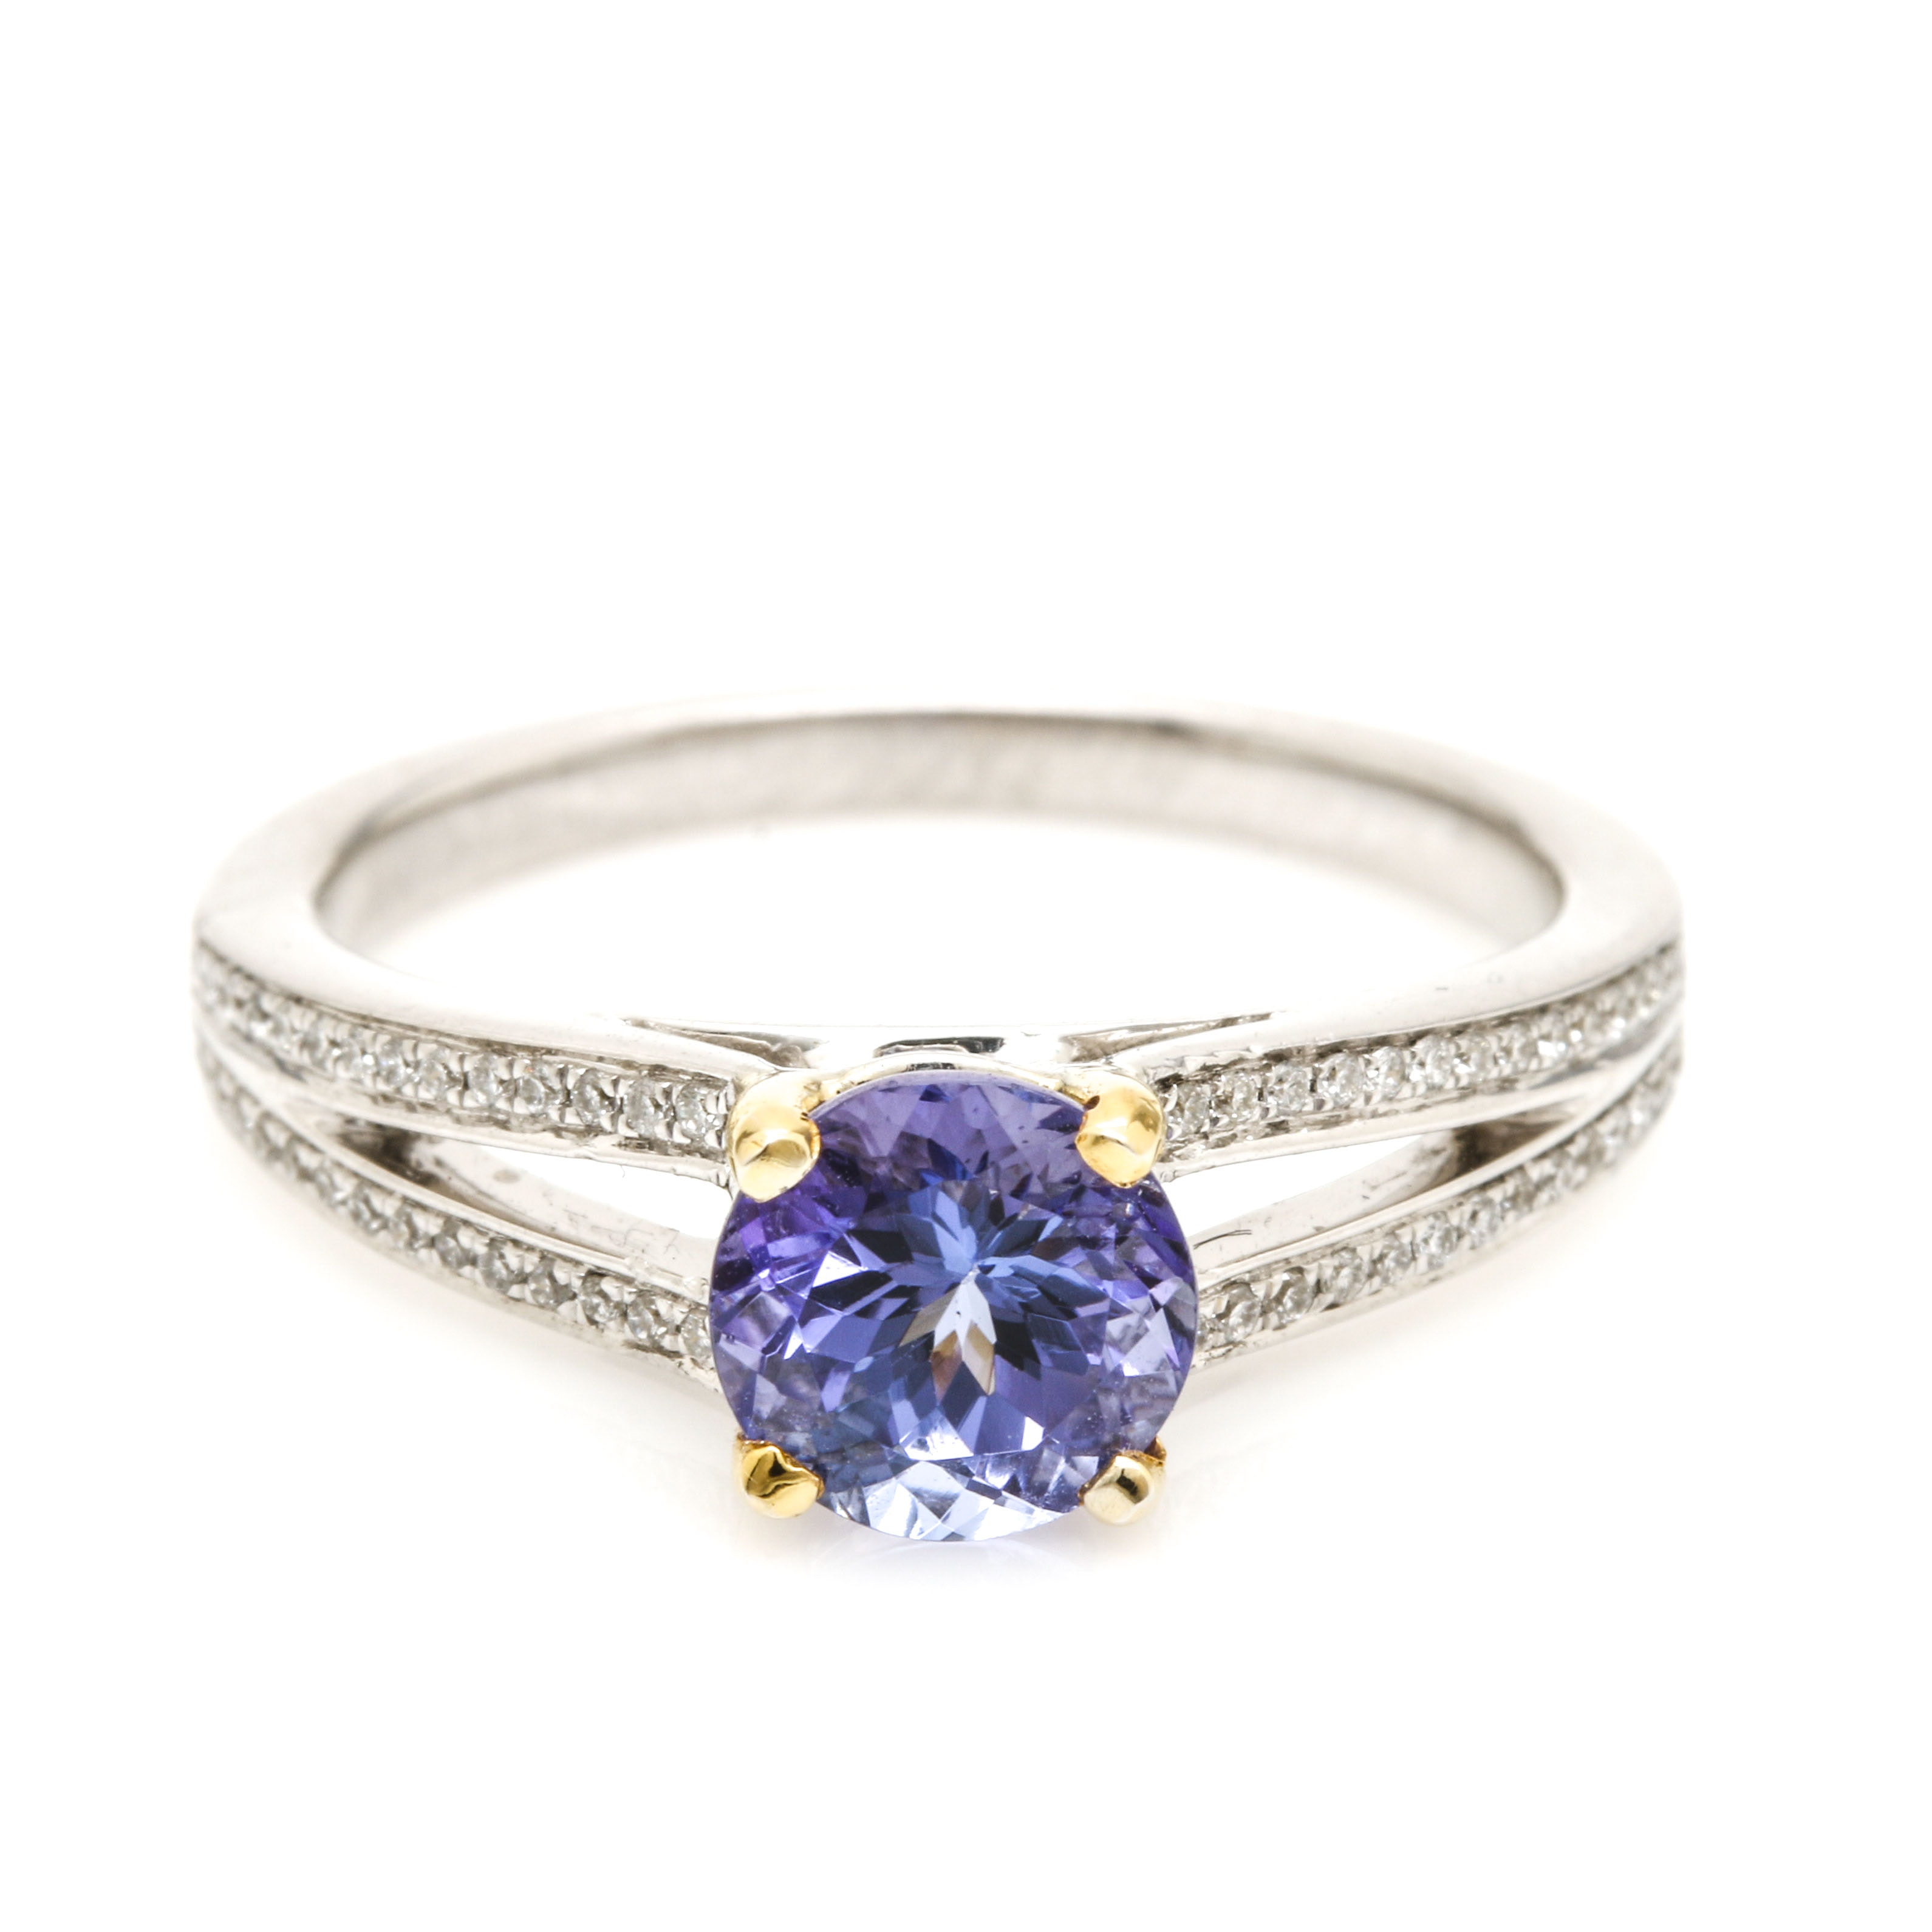 18K White Gold 1.19 CT Tanzanite and Diamond Ring